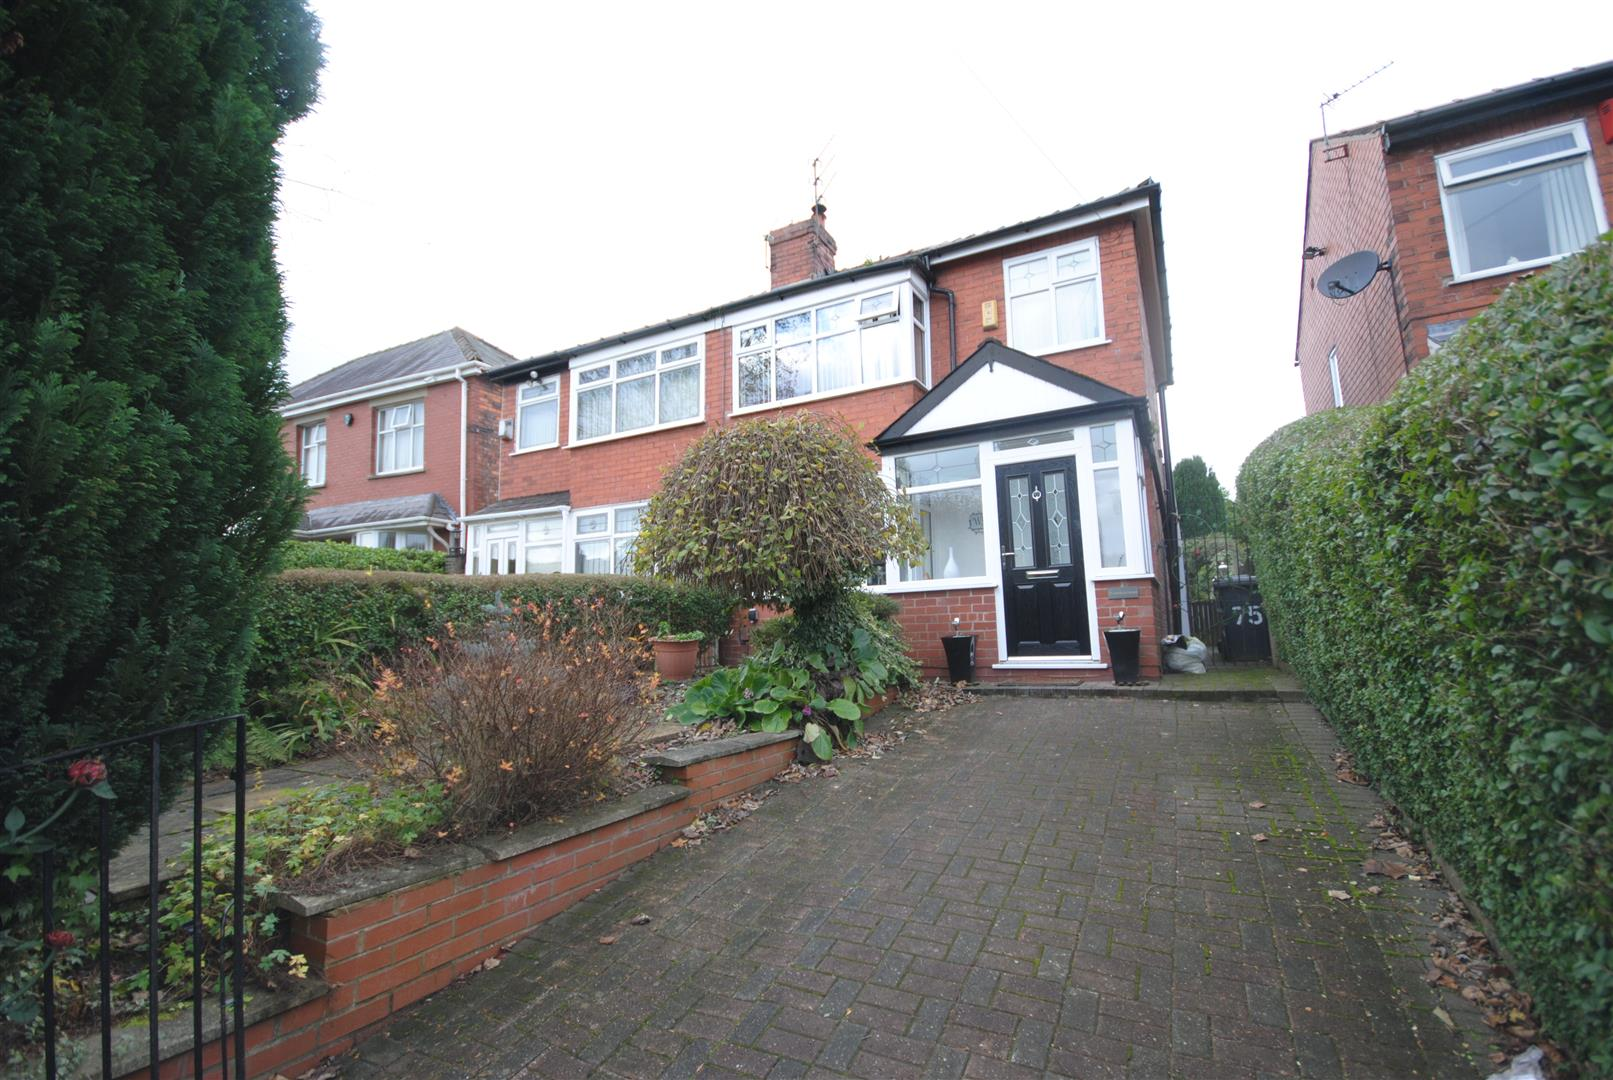 2 Bedrooms Semi Detached House for sale in Chorley Road, Standish, Wigan